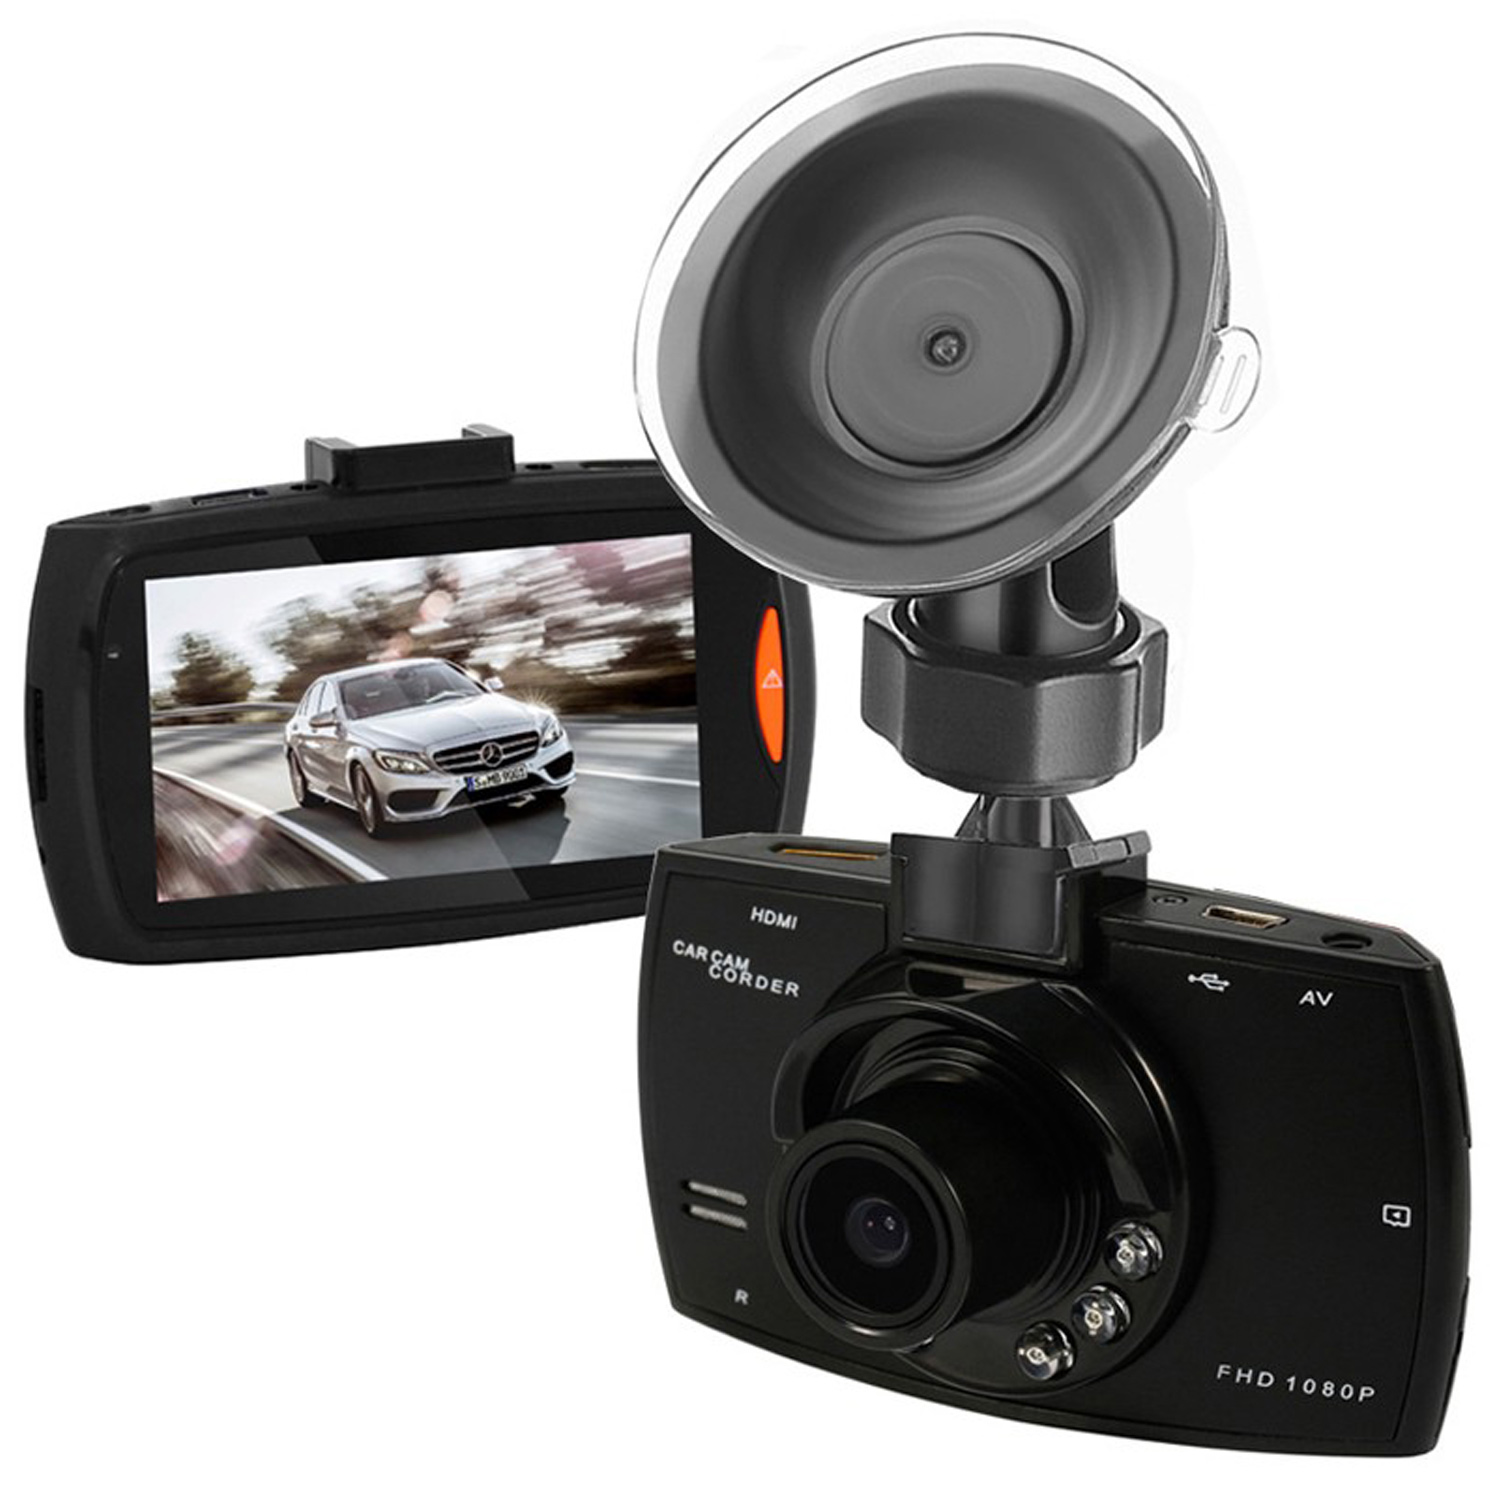 Car Camera Camcorder Dvr Dash Cam Wi End 6 26 2020 348 Pm Sony Icd Ux560f Digital Voice Recorder With Usb Black Night Vision Col